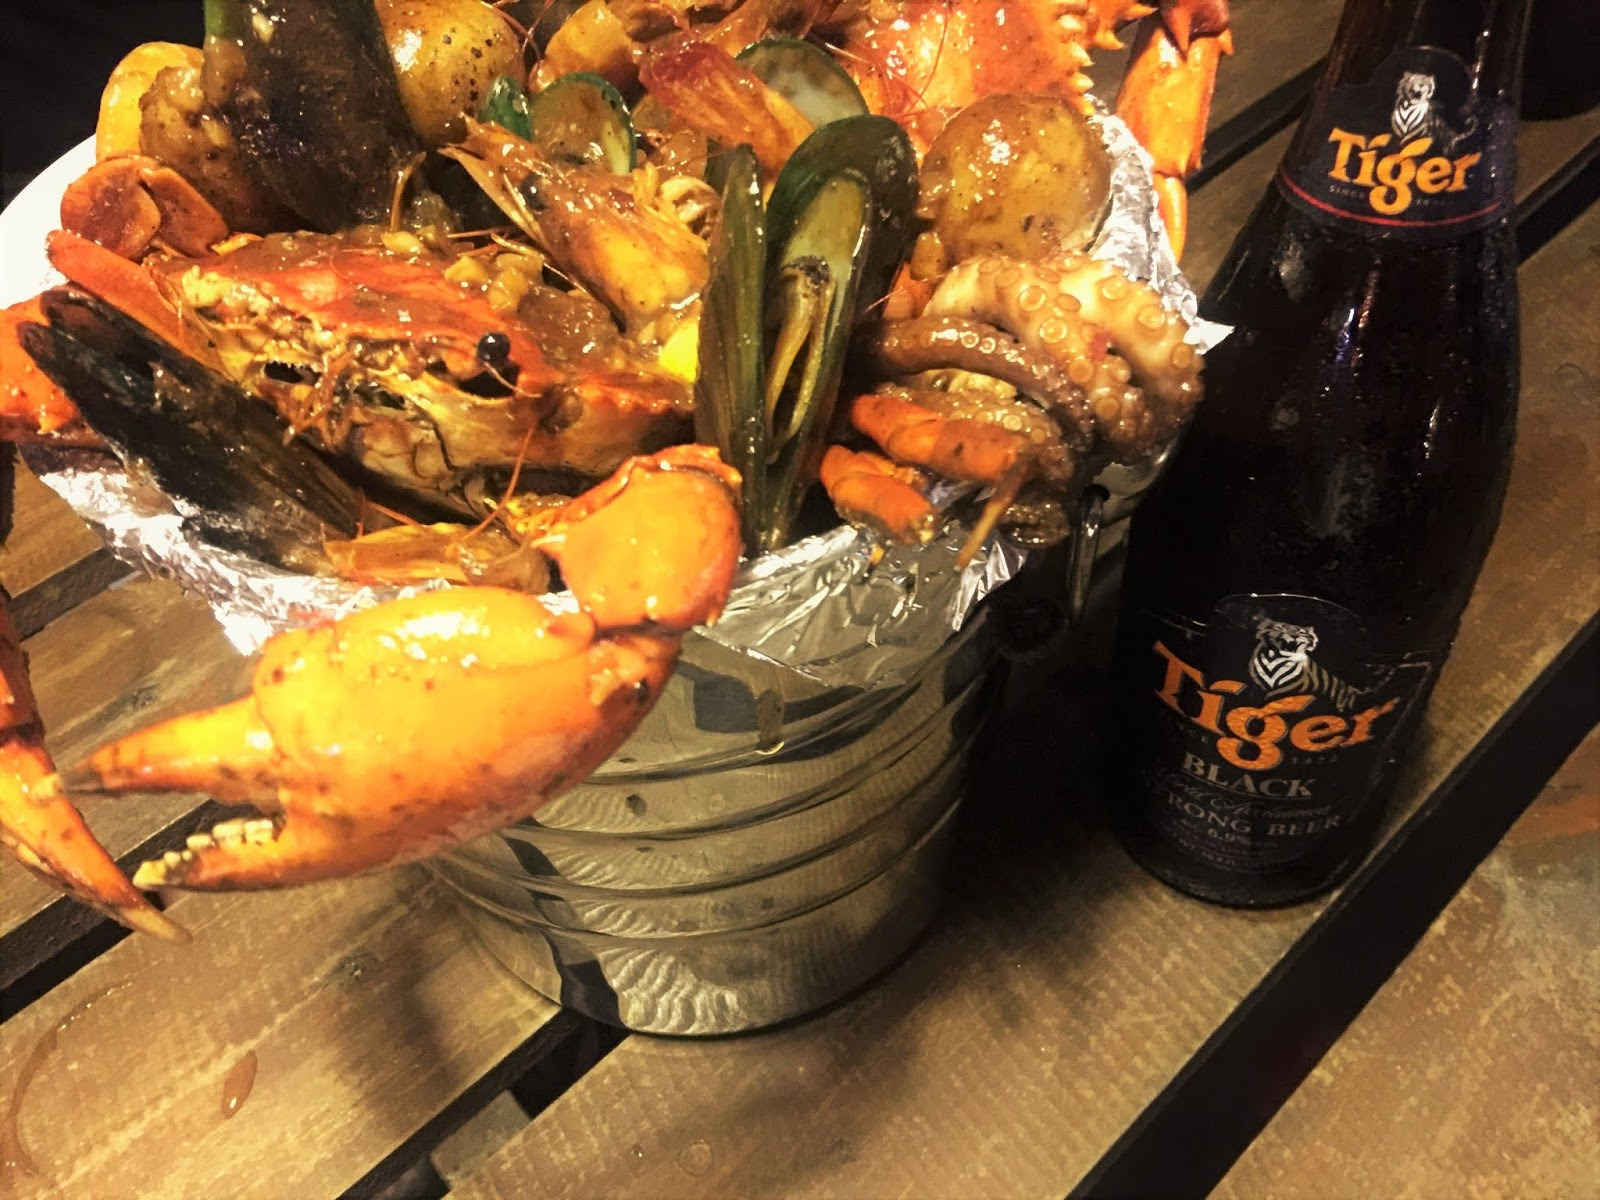 Mixed Seafood Cajun Bucket and Tiger beer in Hailey's Seafood and Barbecue